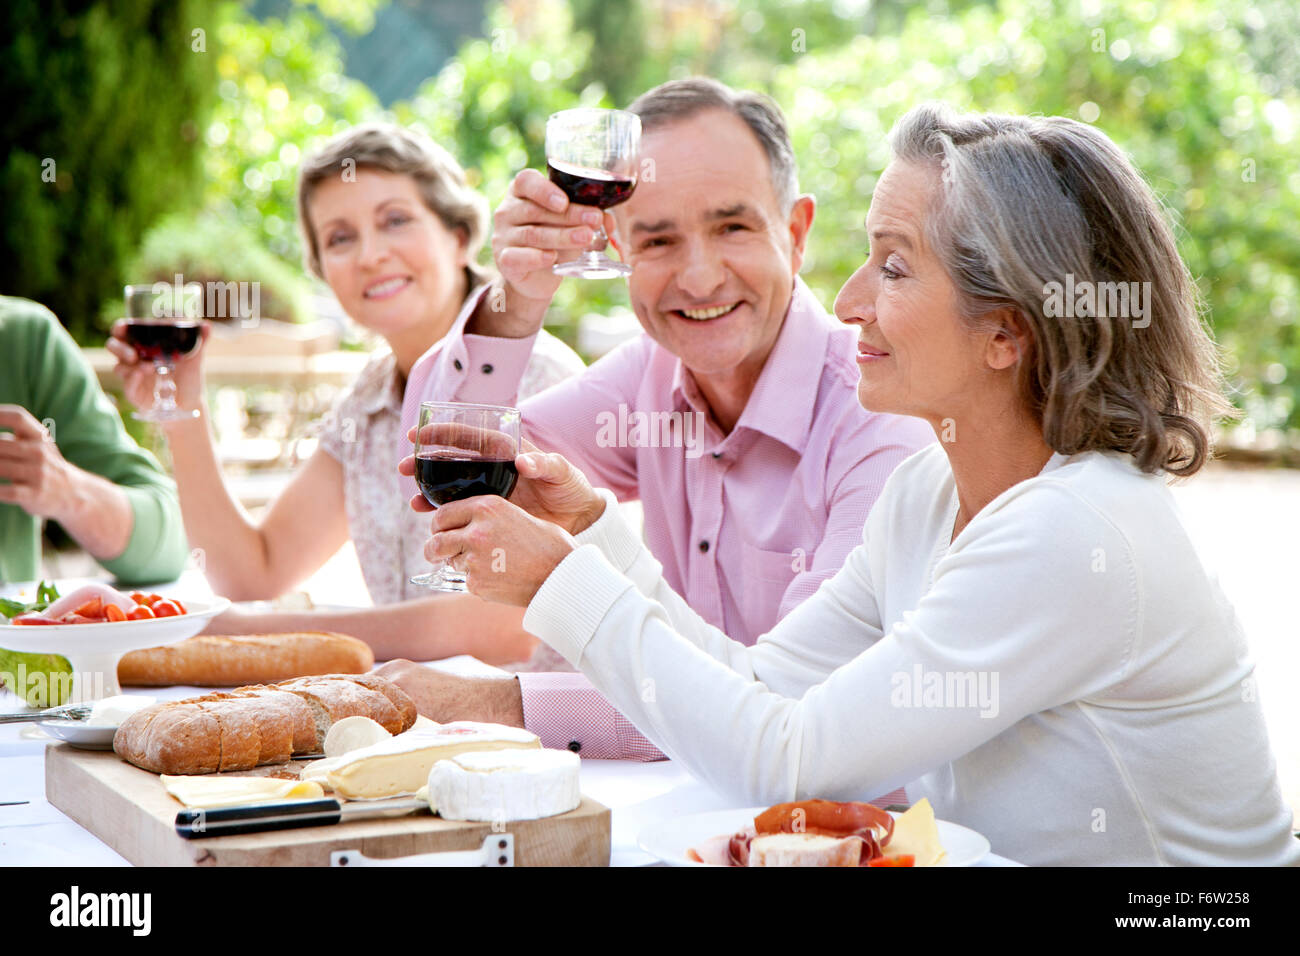 Spain, Mallorca, mature man sitting with friends at laid table in the garden toasting with red wine - Stock Image